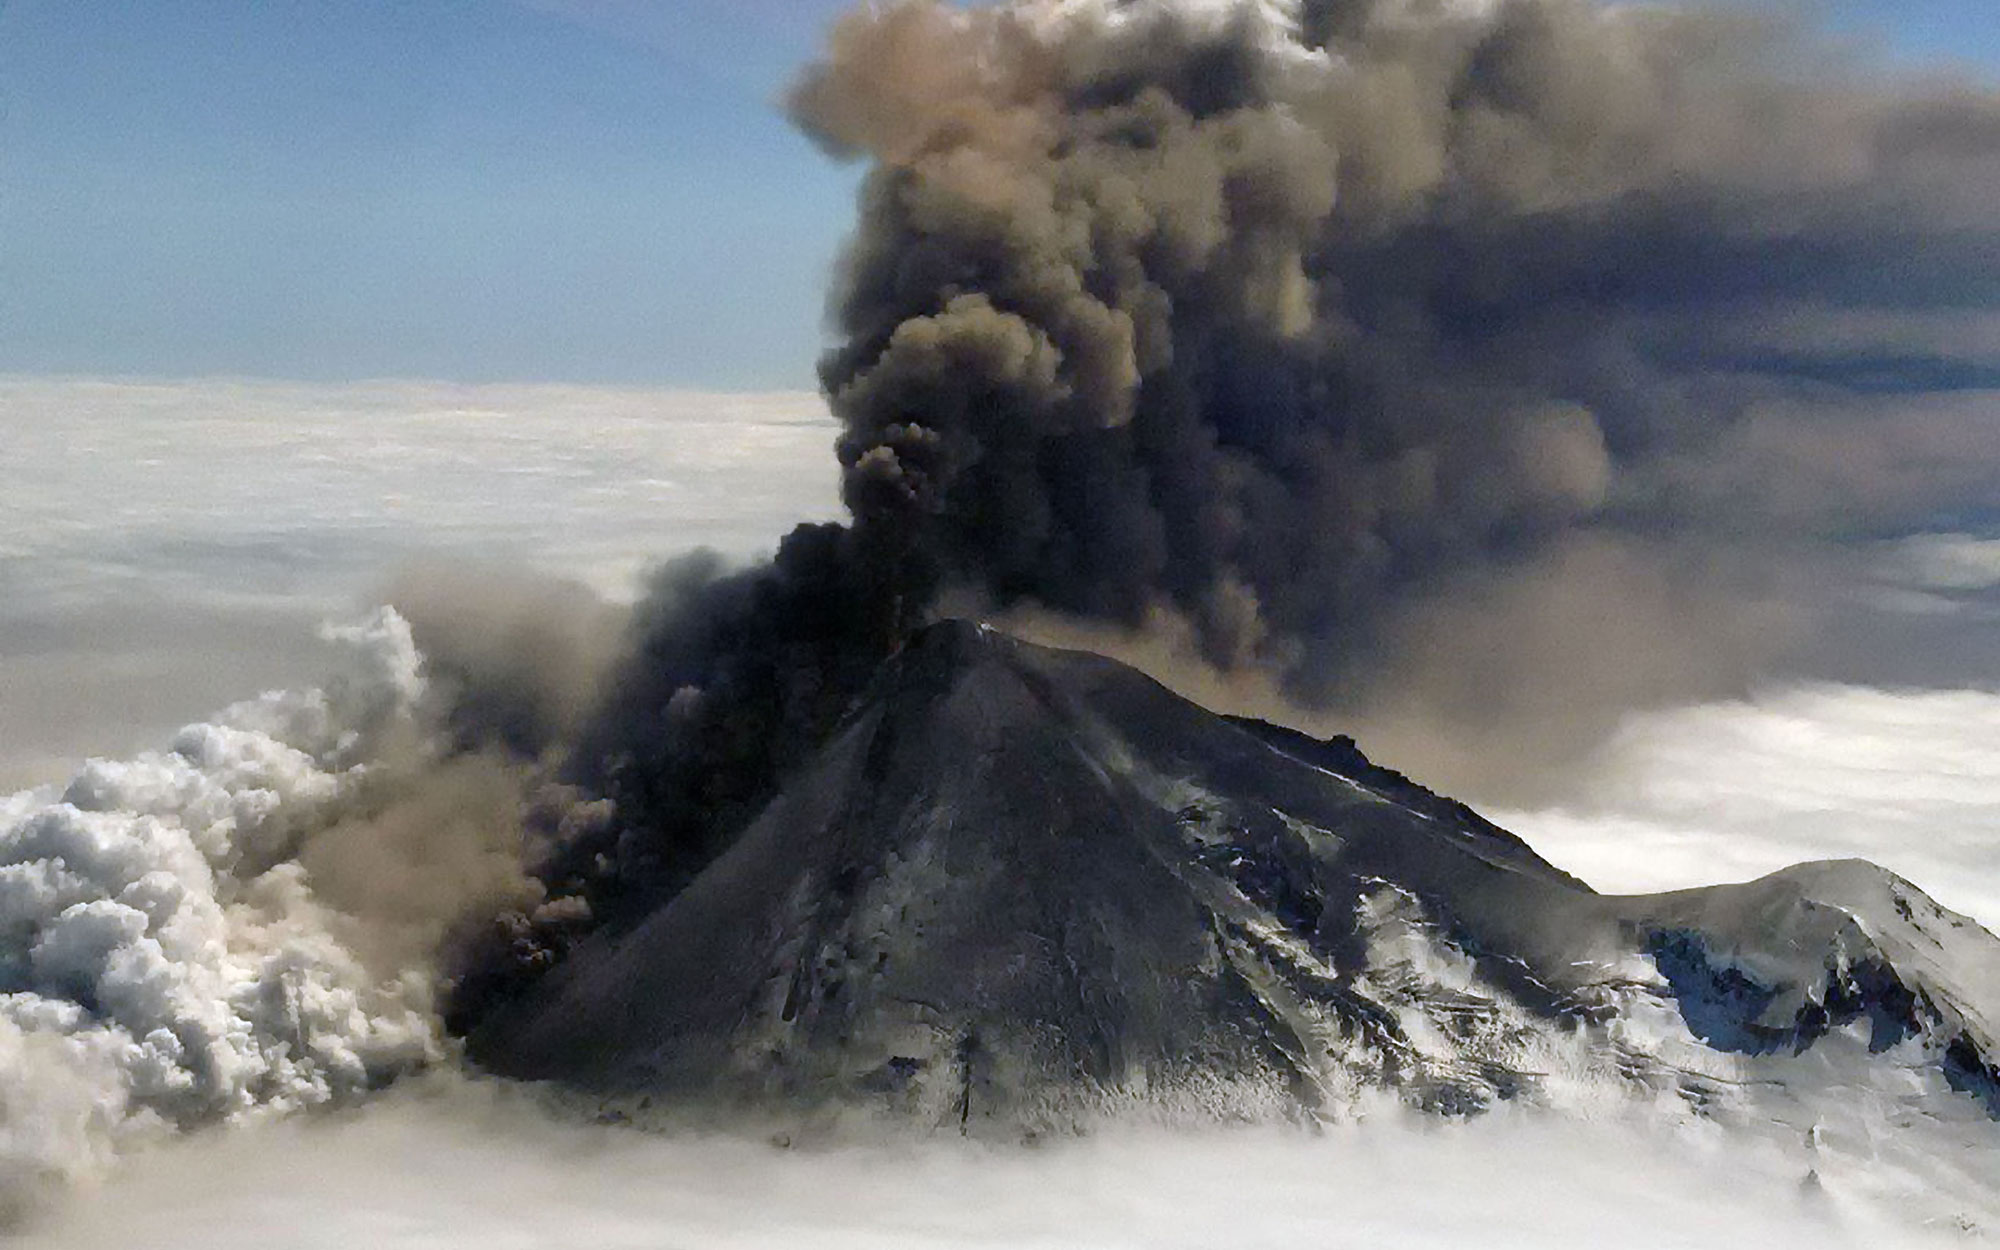 In Photos: Alaska's Mount Pavlof Erupts